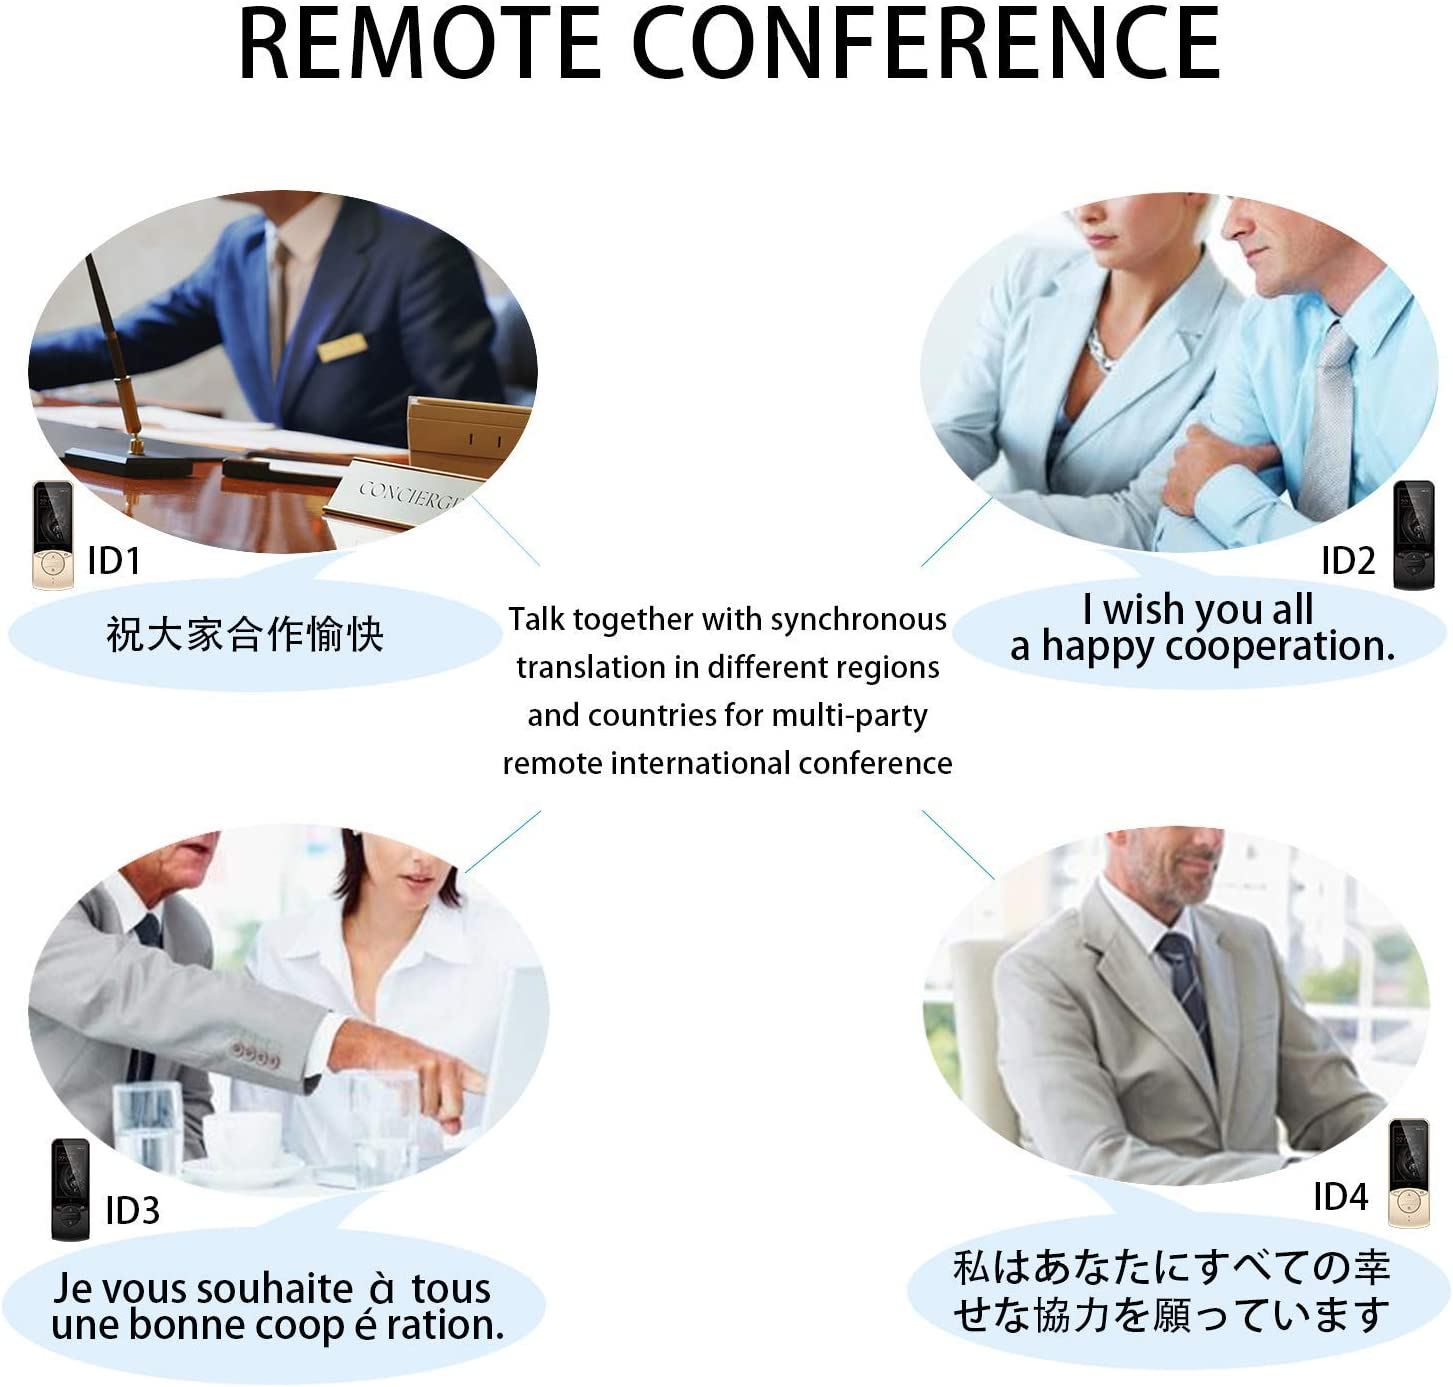 Remote International Conference for Business Travel Learning Image ...